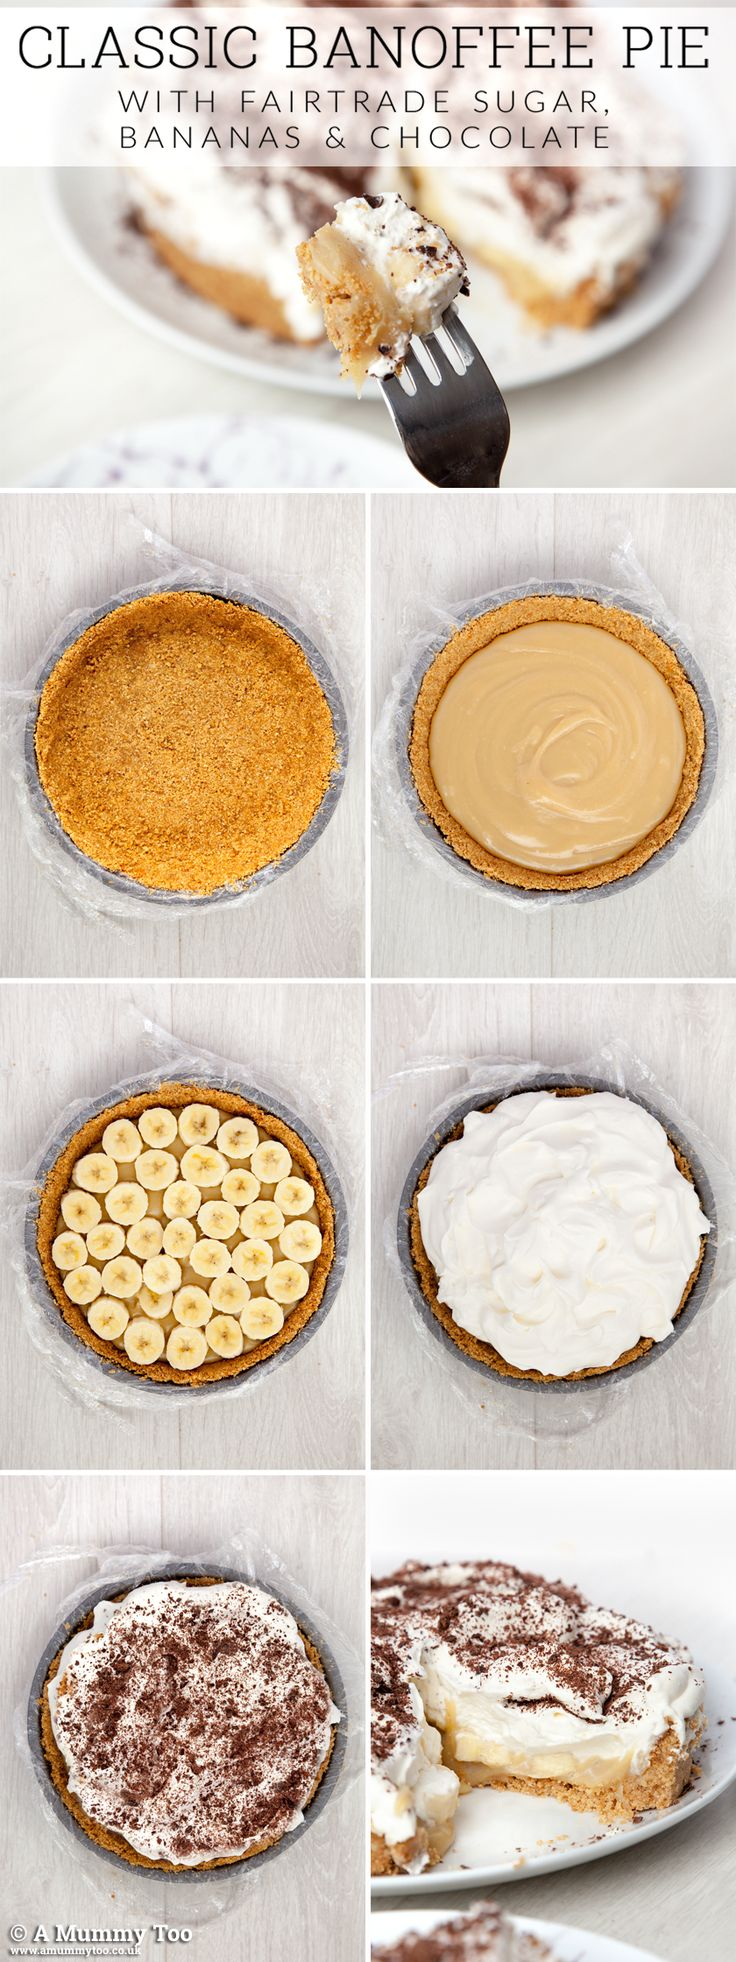 Step-by-step guide to making sweet and fresh banoffee pie, generously topped with whipped cream!